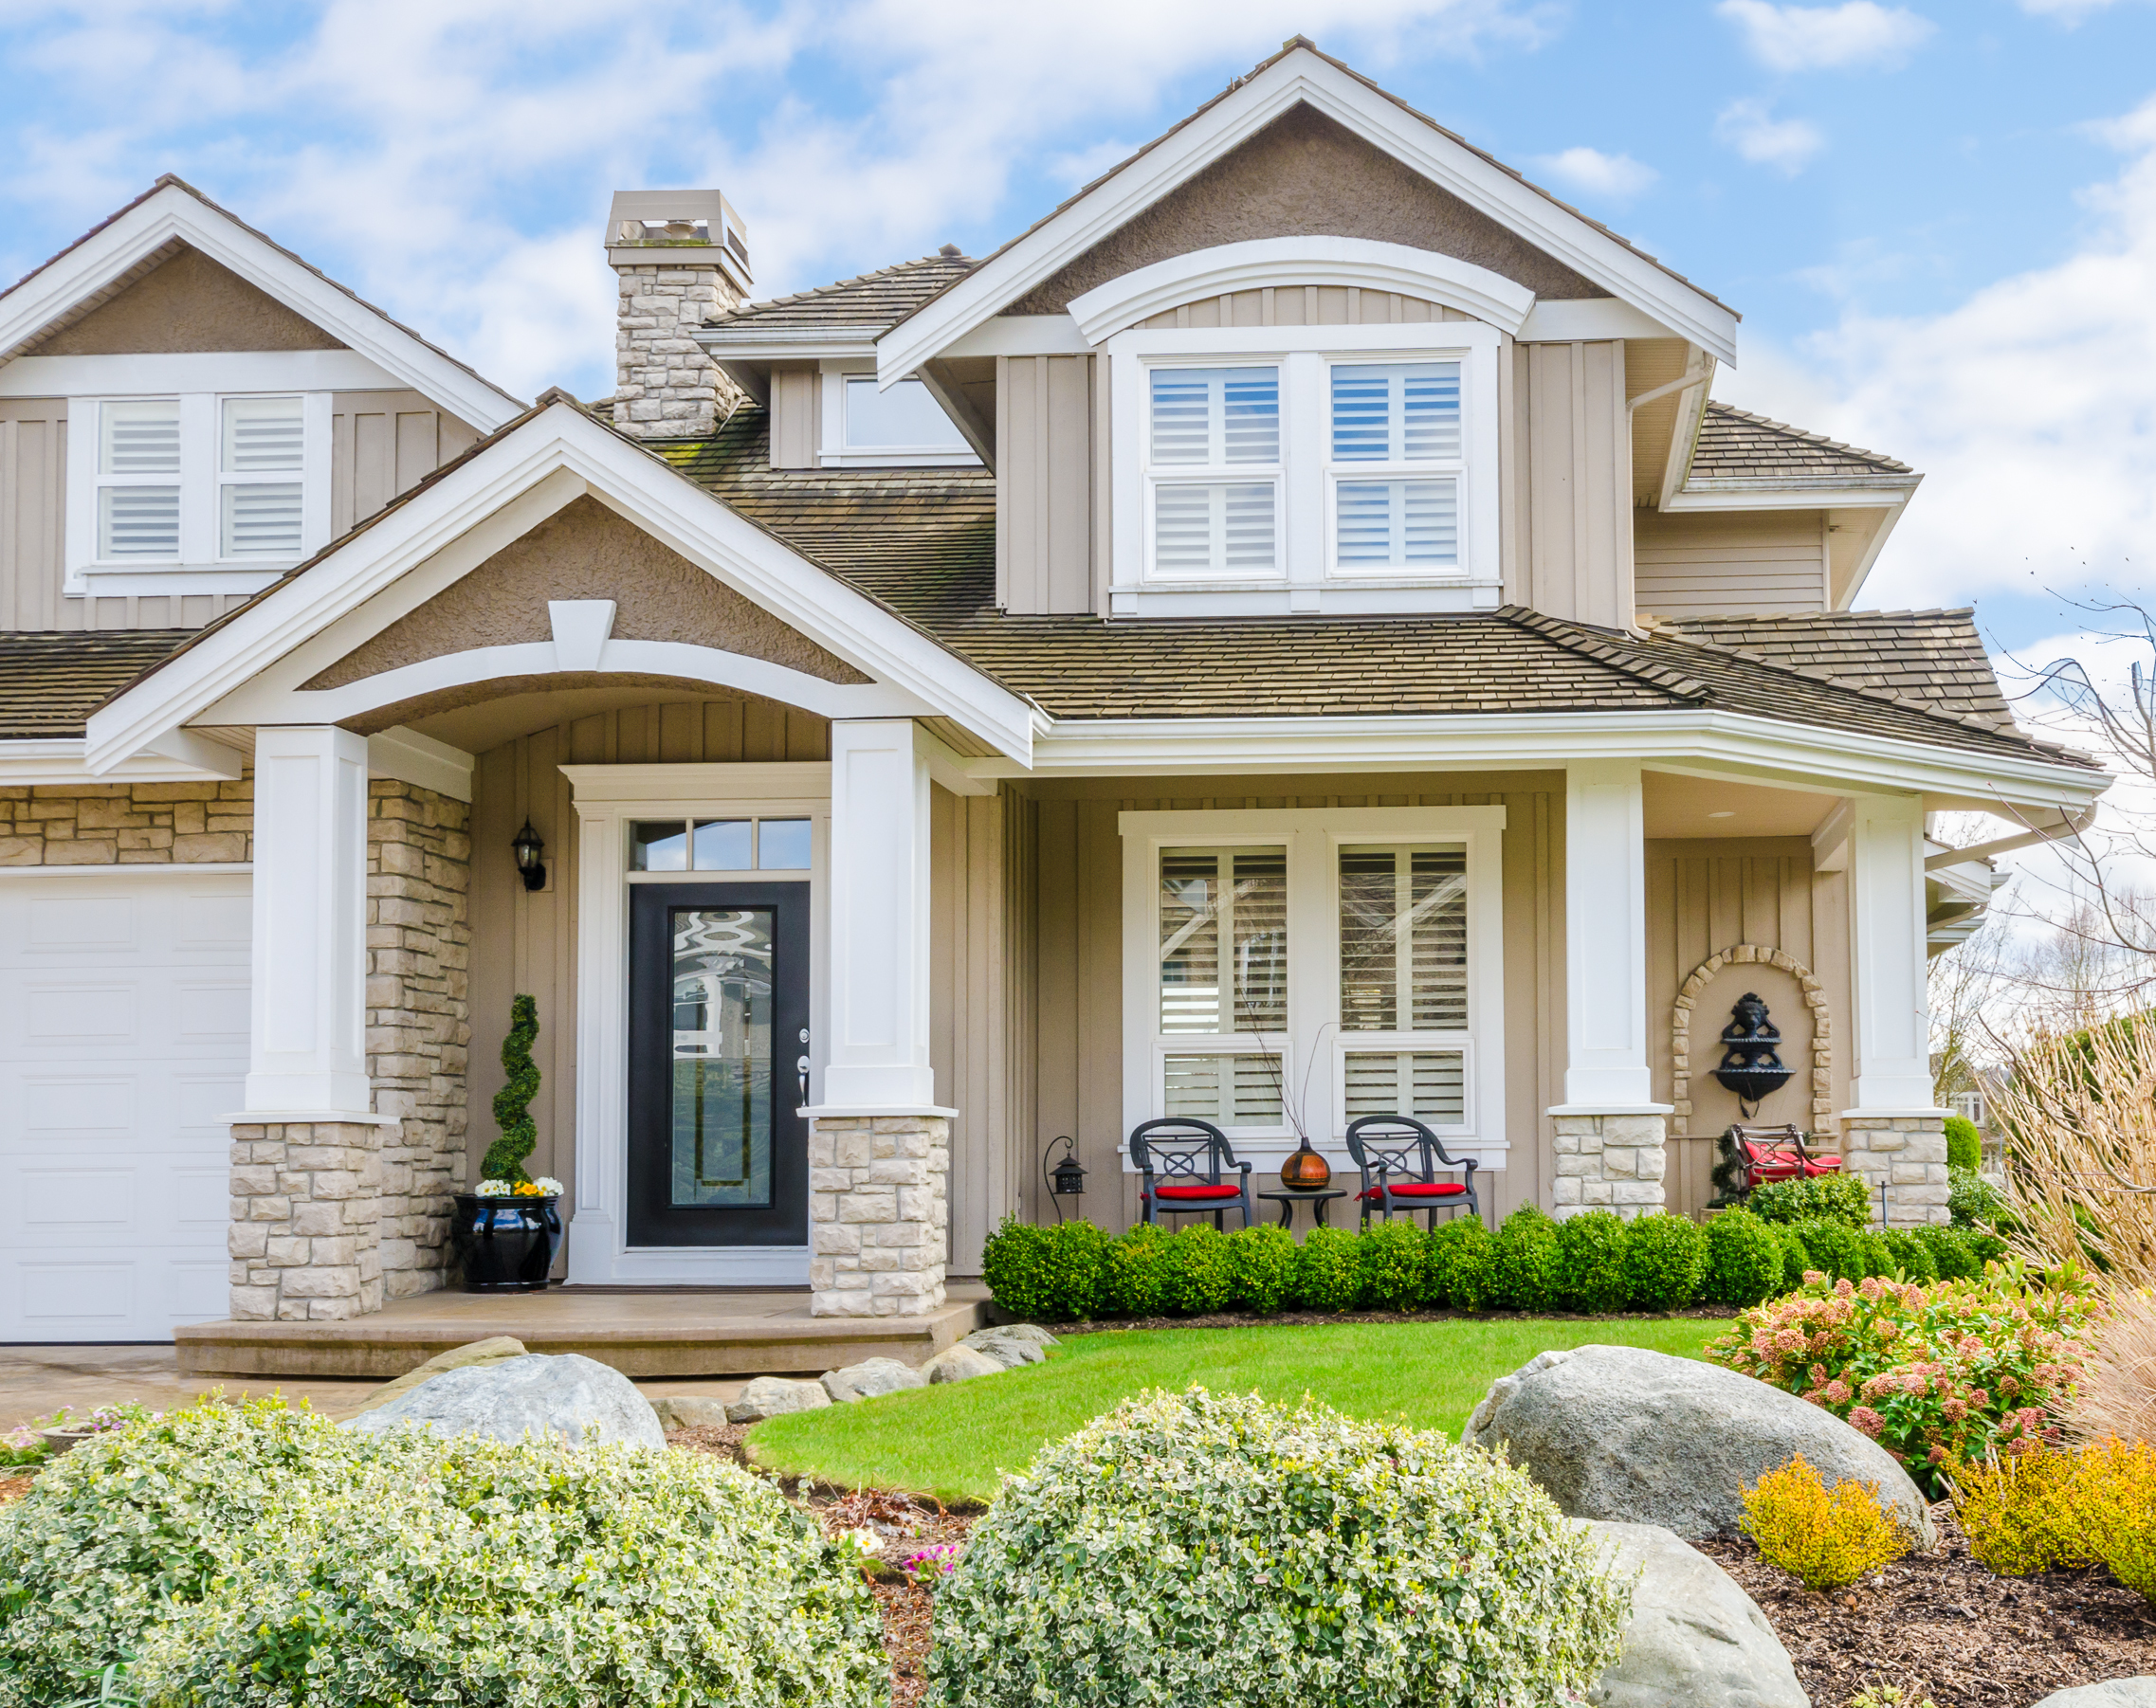 In Need Of Home Mortgages Advice? Read On